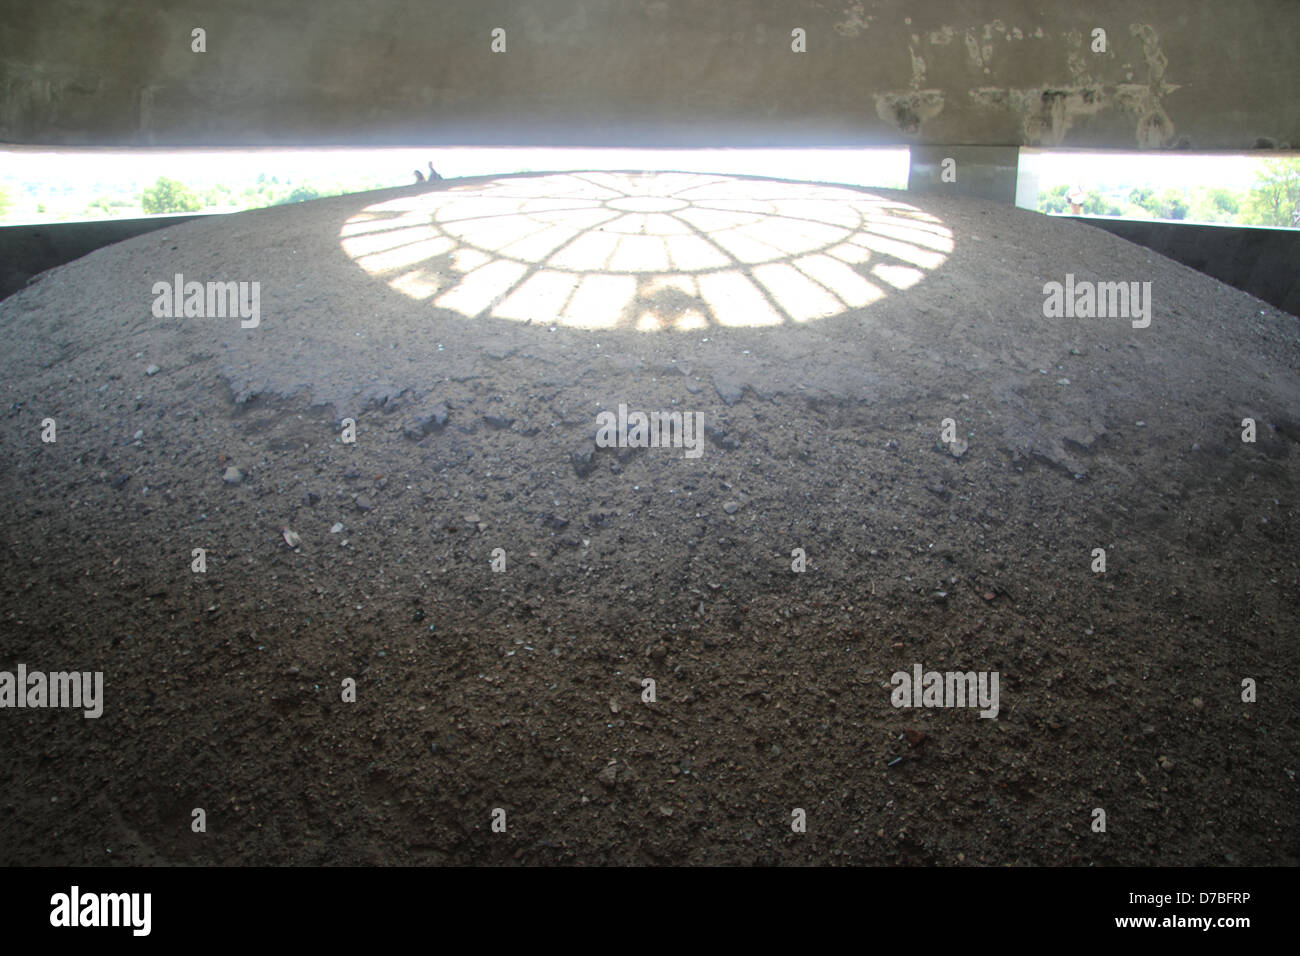 Victims' ashes displayed beneath the Dome of the Mausoleum At Majdanek Memorial Site Stock Photo